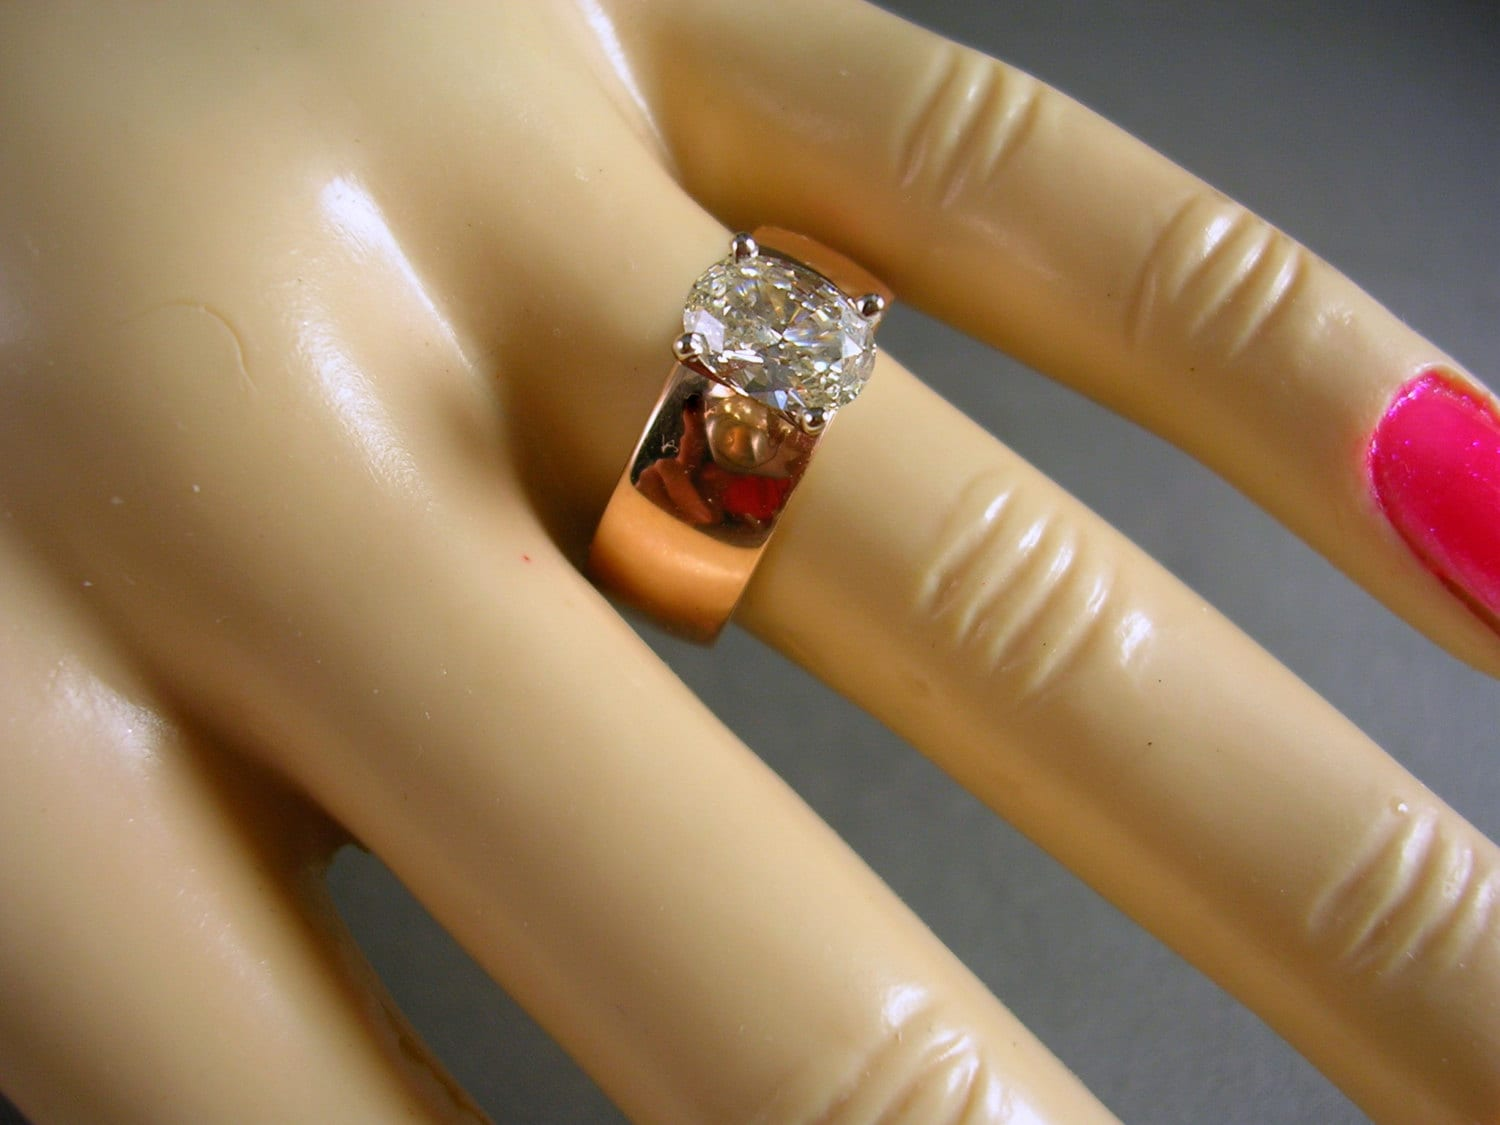 Russian Rose Gold Wide Band Ring .84 Carat Oval Diamond 5.5gm